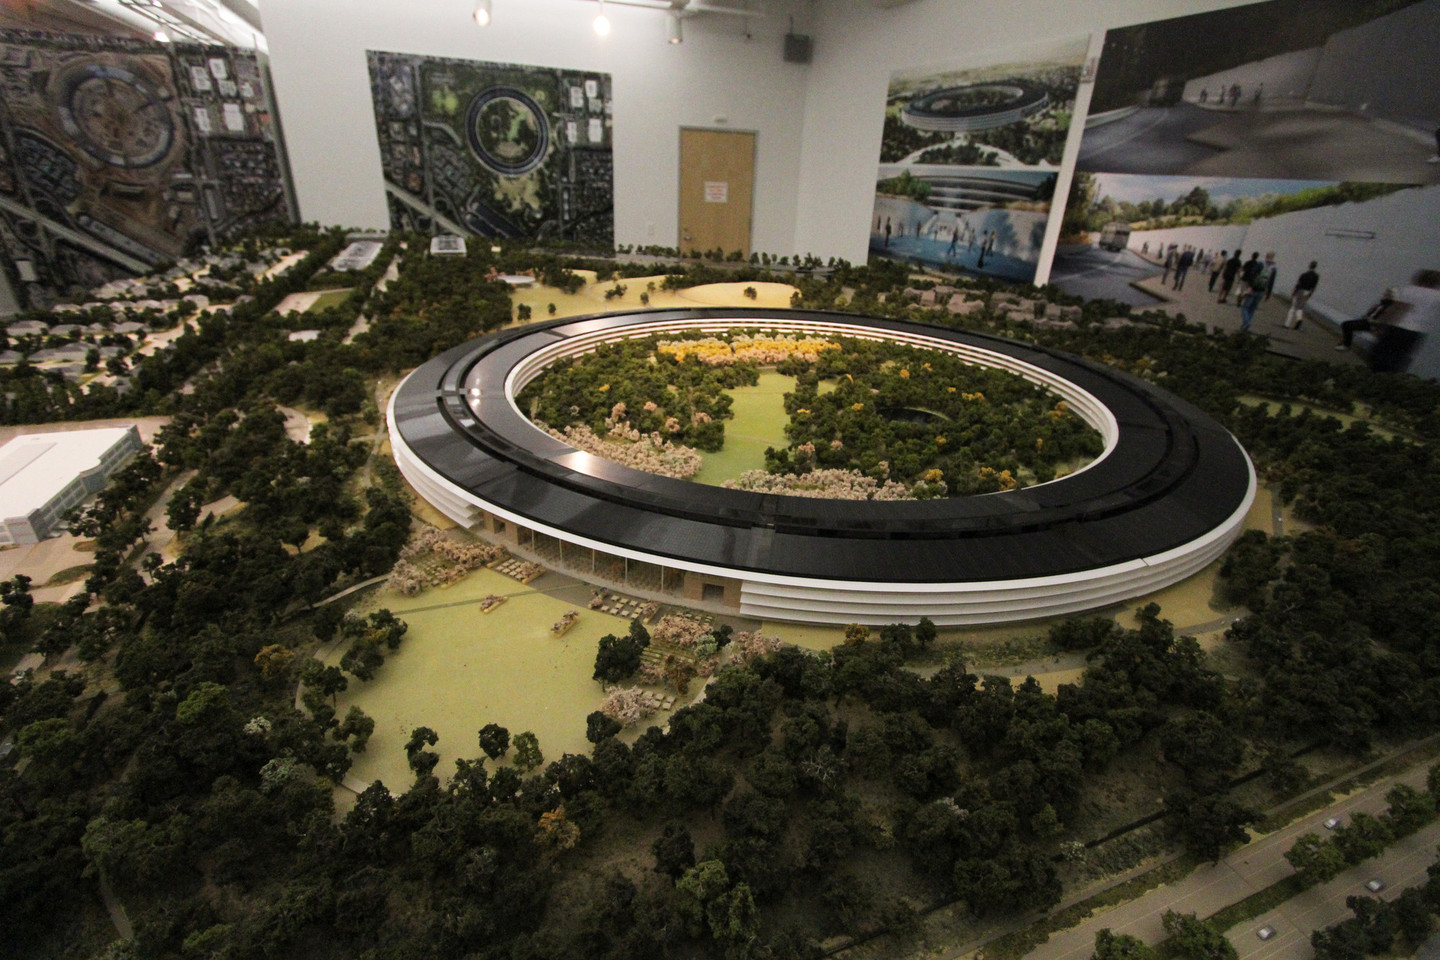 apple has a roomsize model of the new campus in building on site cupertino office